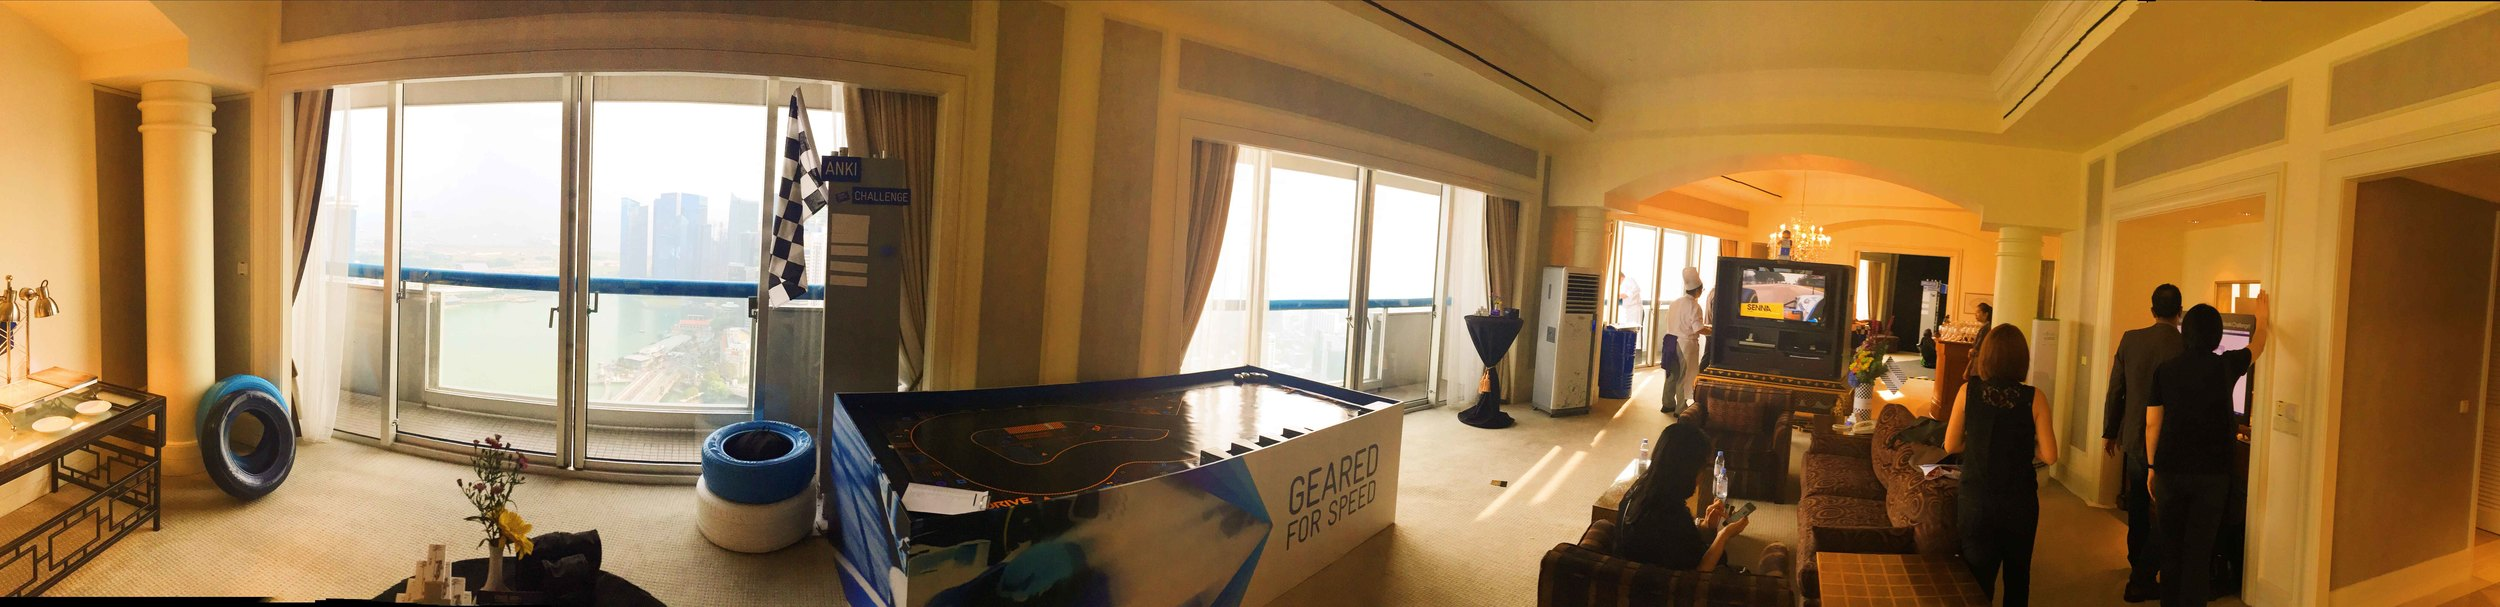 Presidential Suite Magician Swissotel